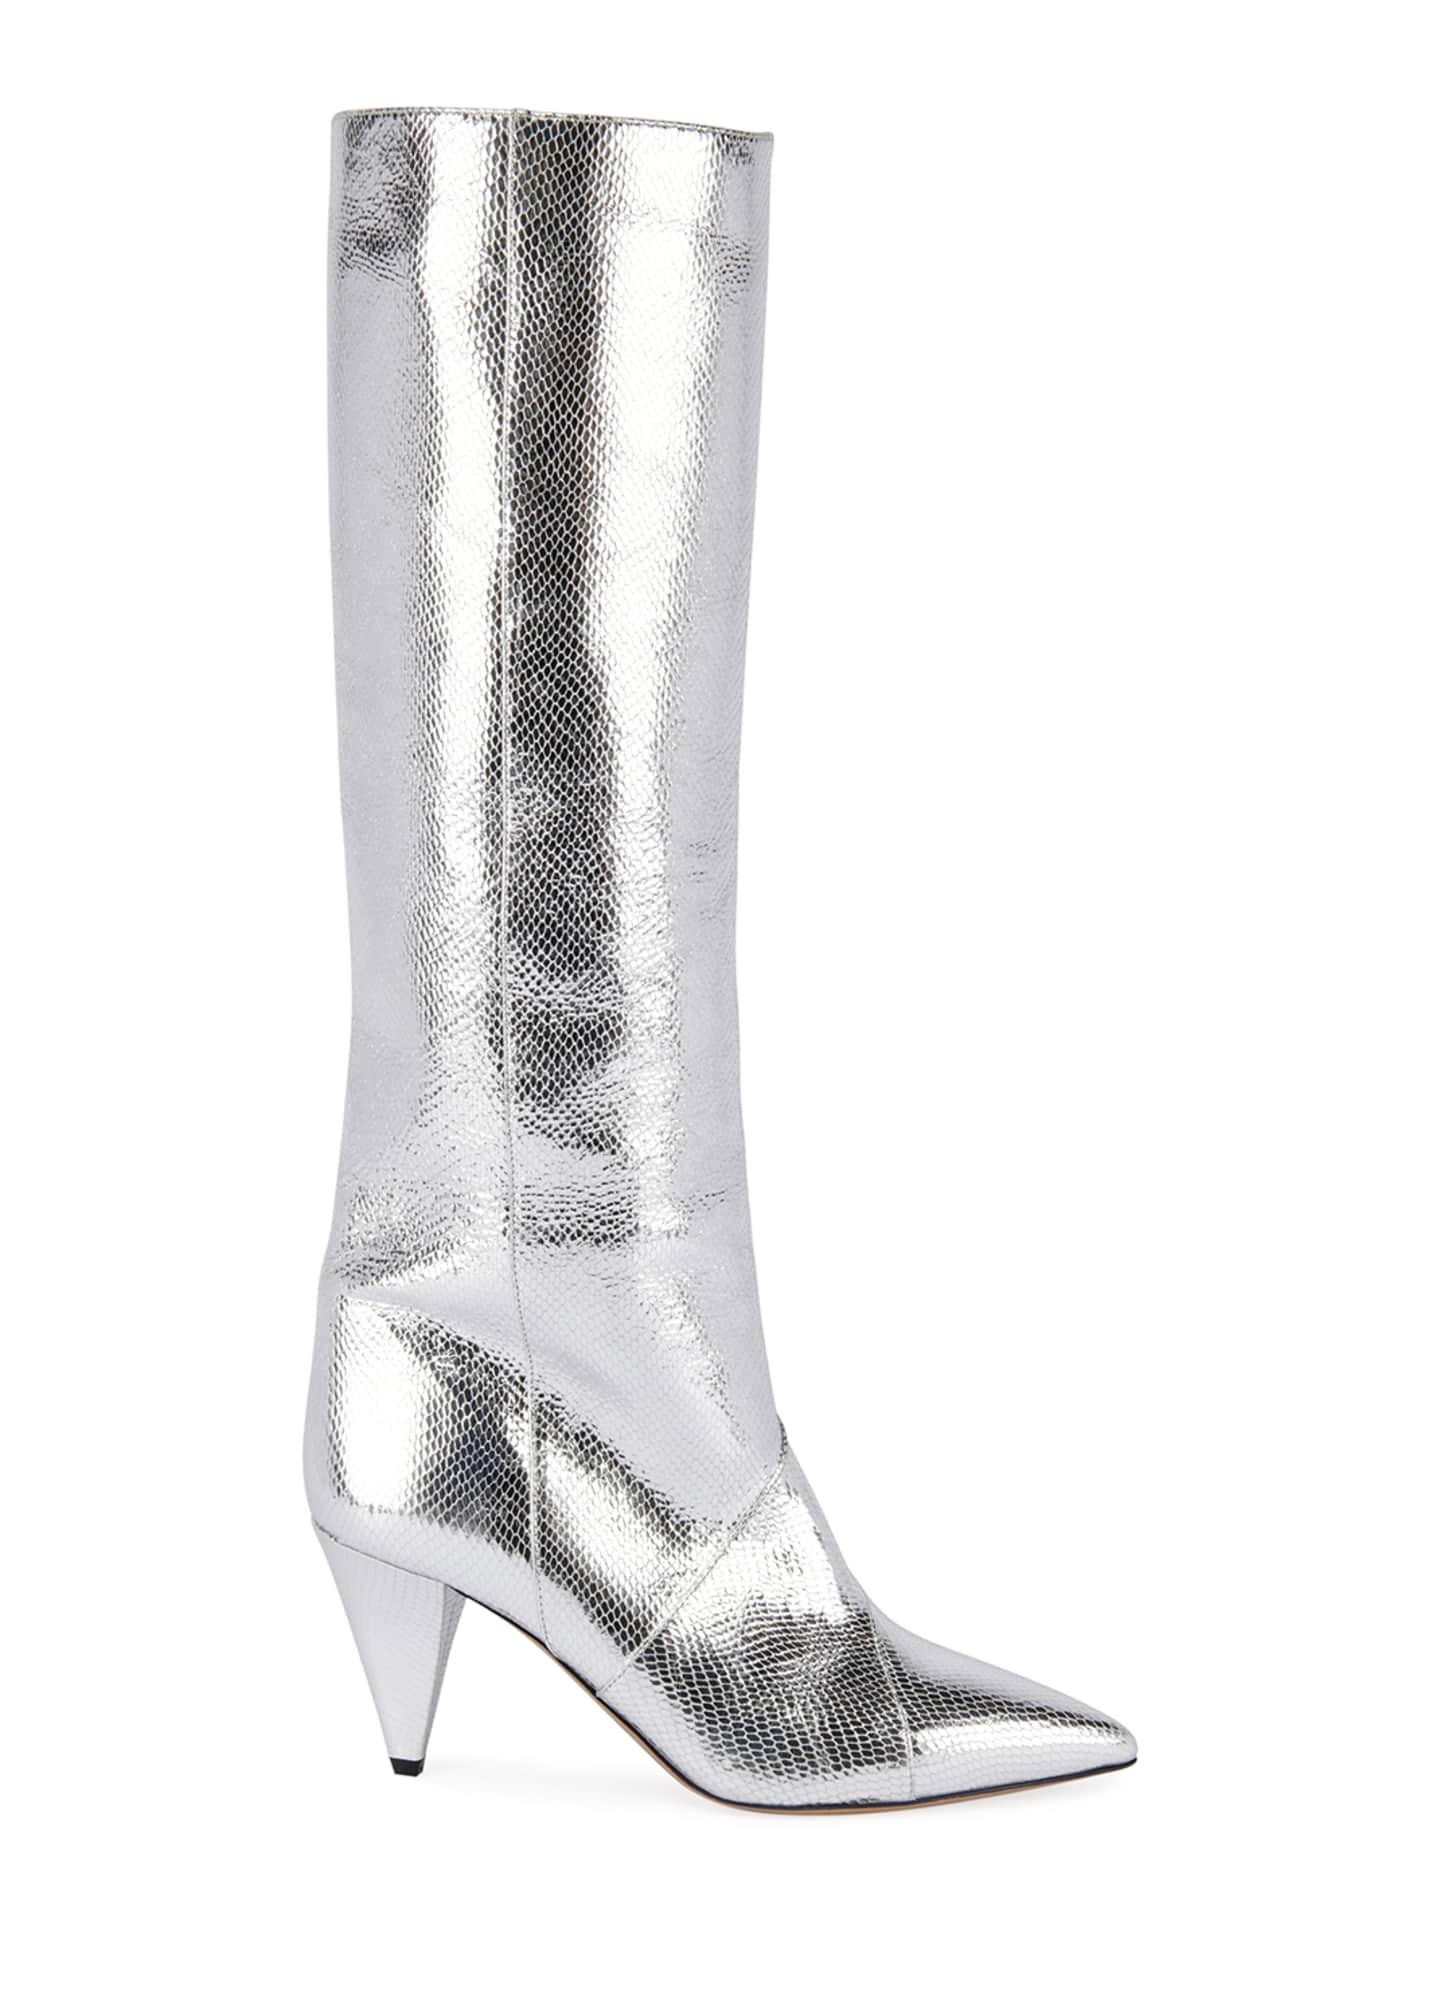 Image 2 of 4: Laomi Metallic Leather Mid Boots